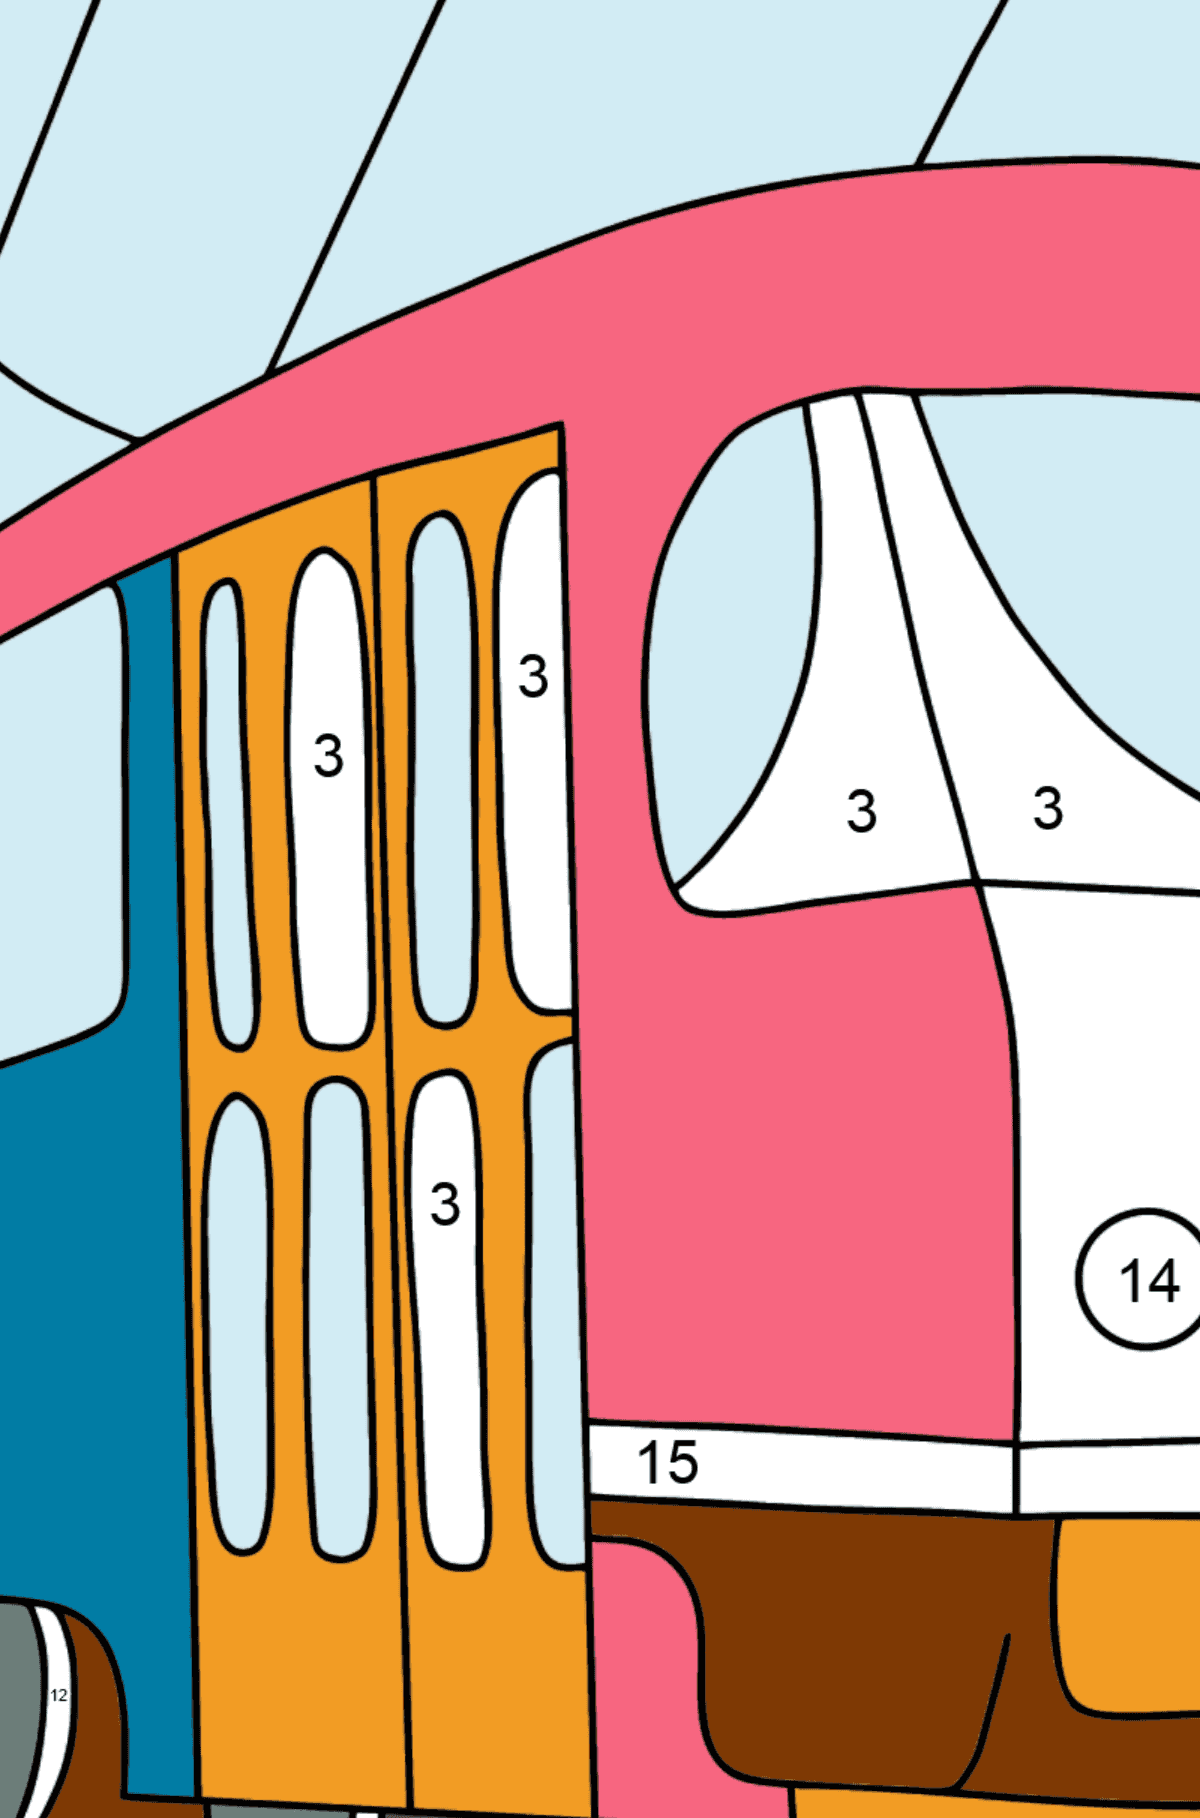 A Tram Coloring Page - Print fo free - Coloring by Numbers for Kids